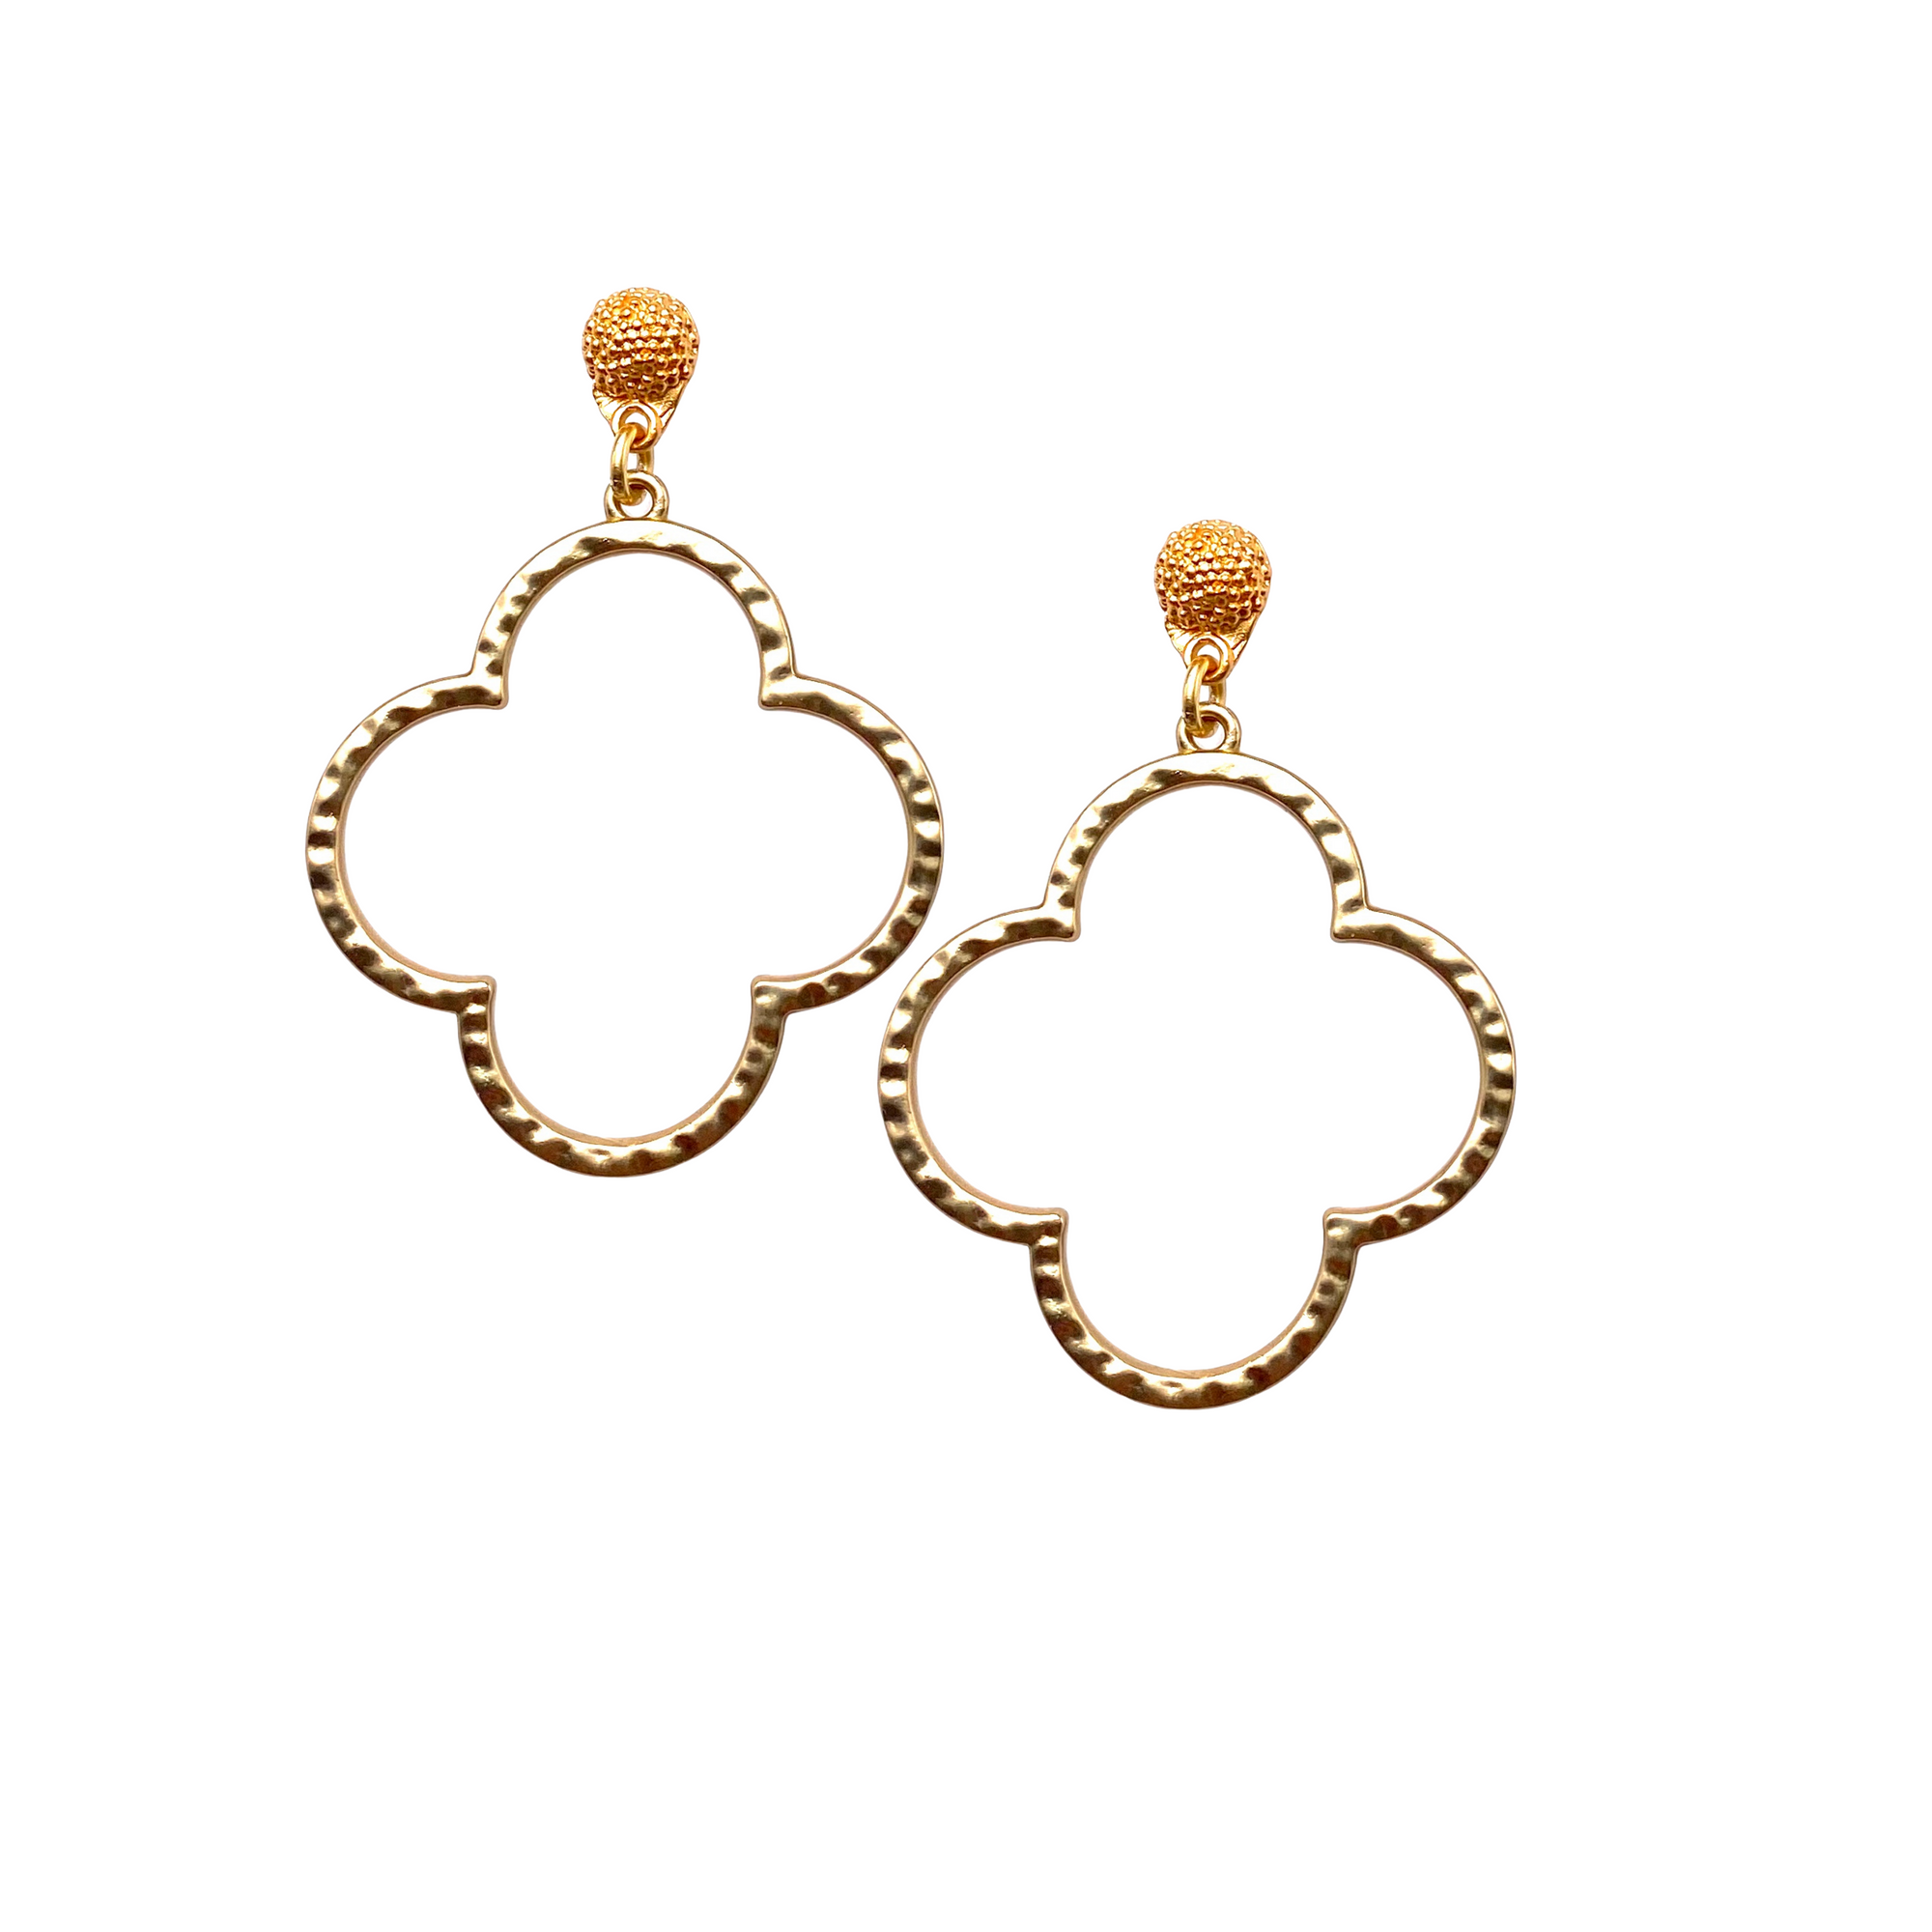 Quatrefoil Earrings